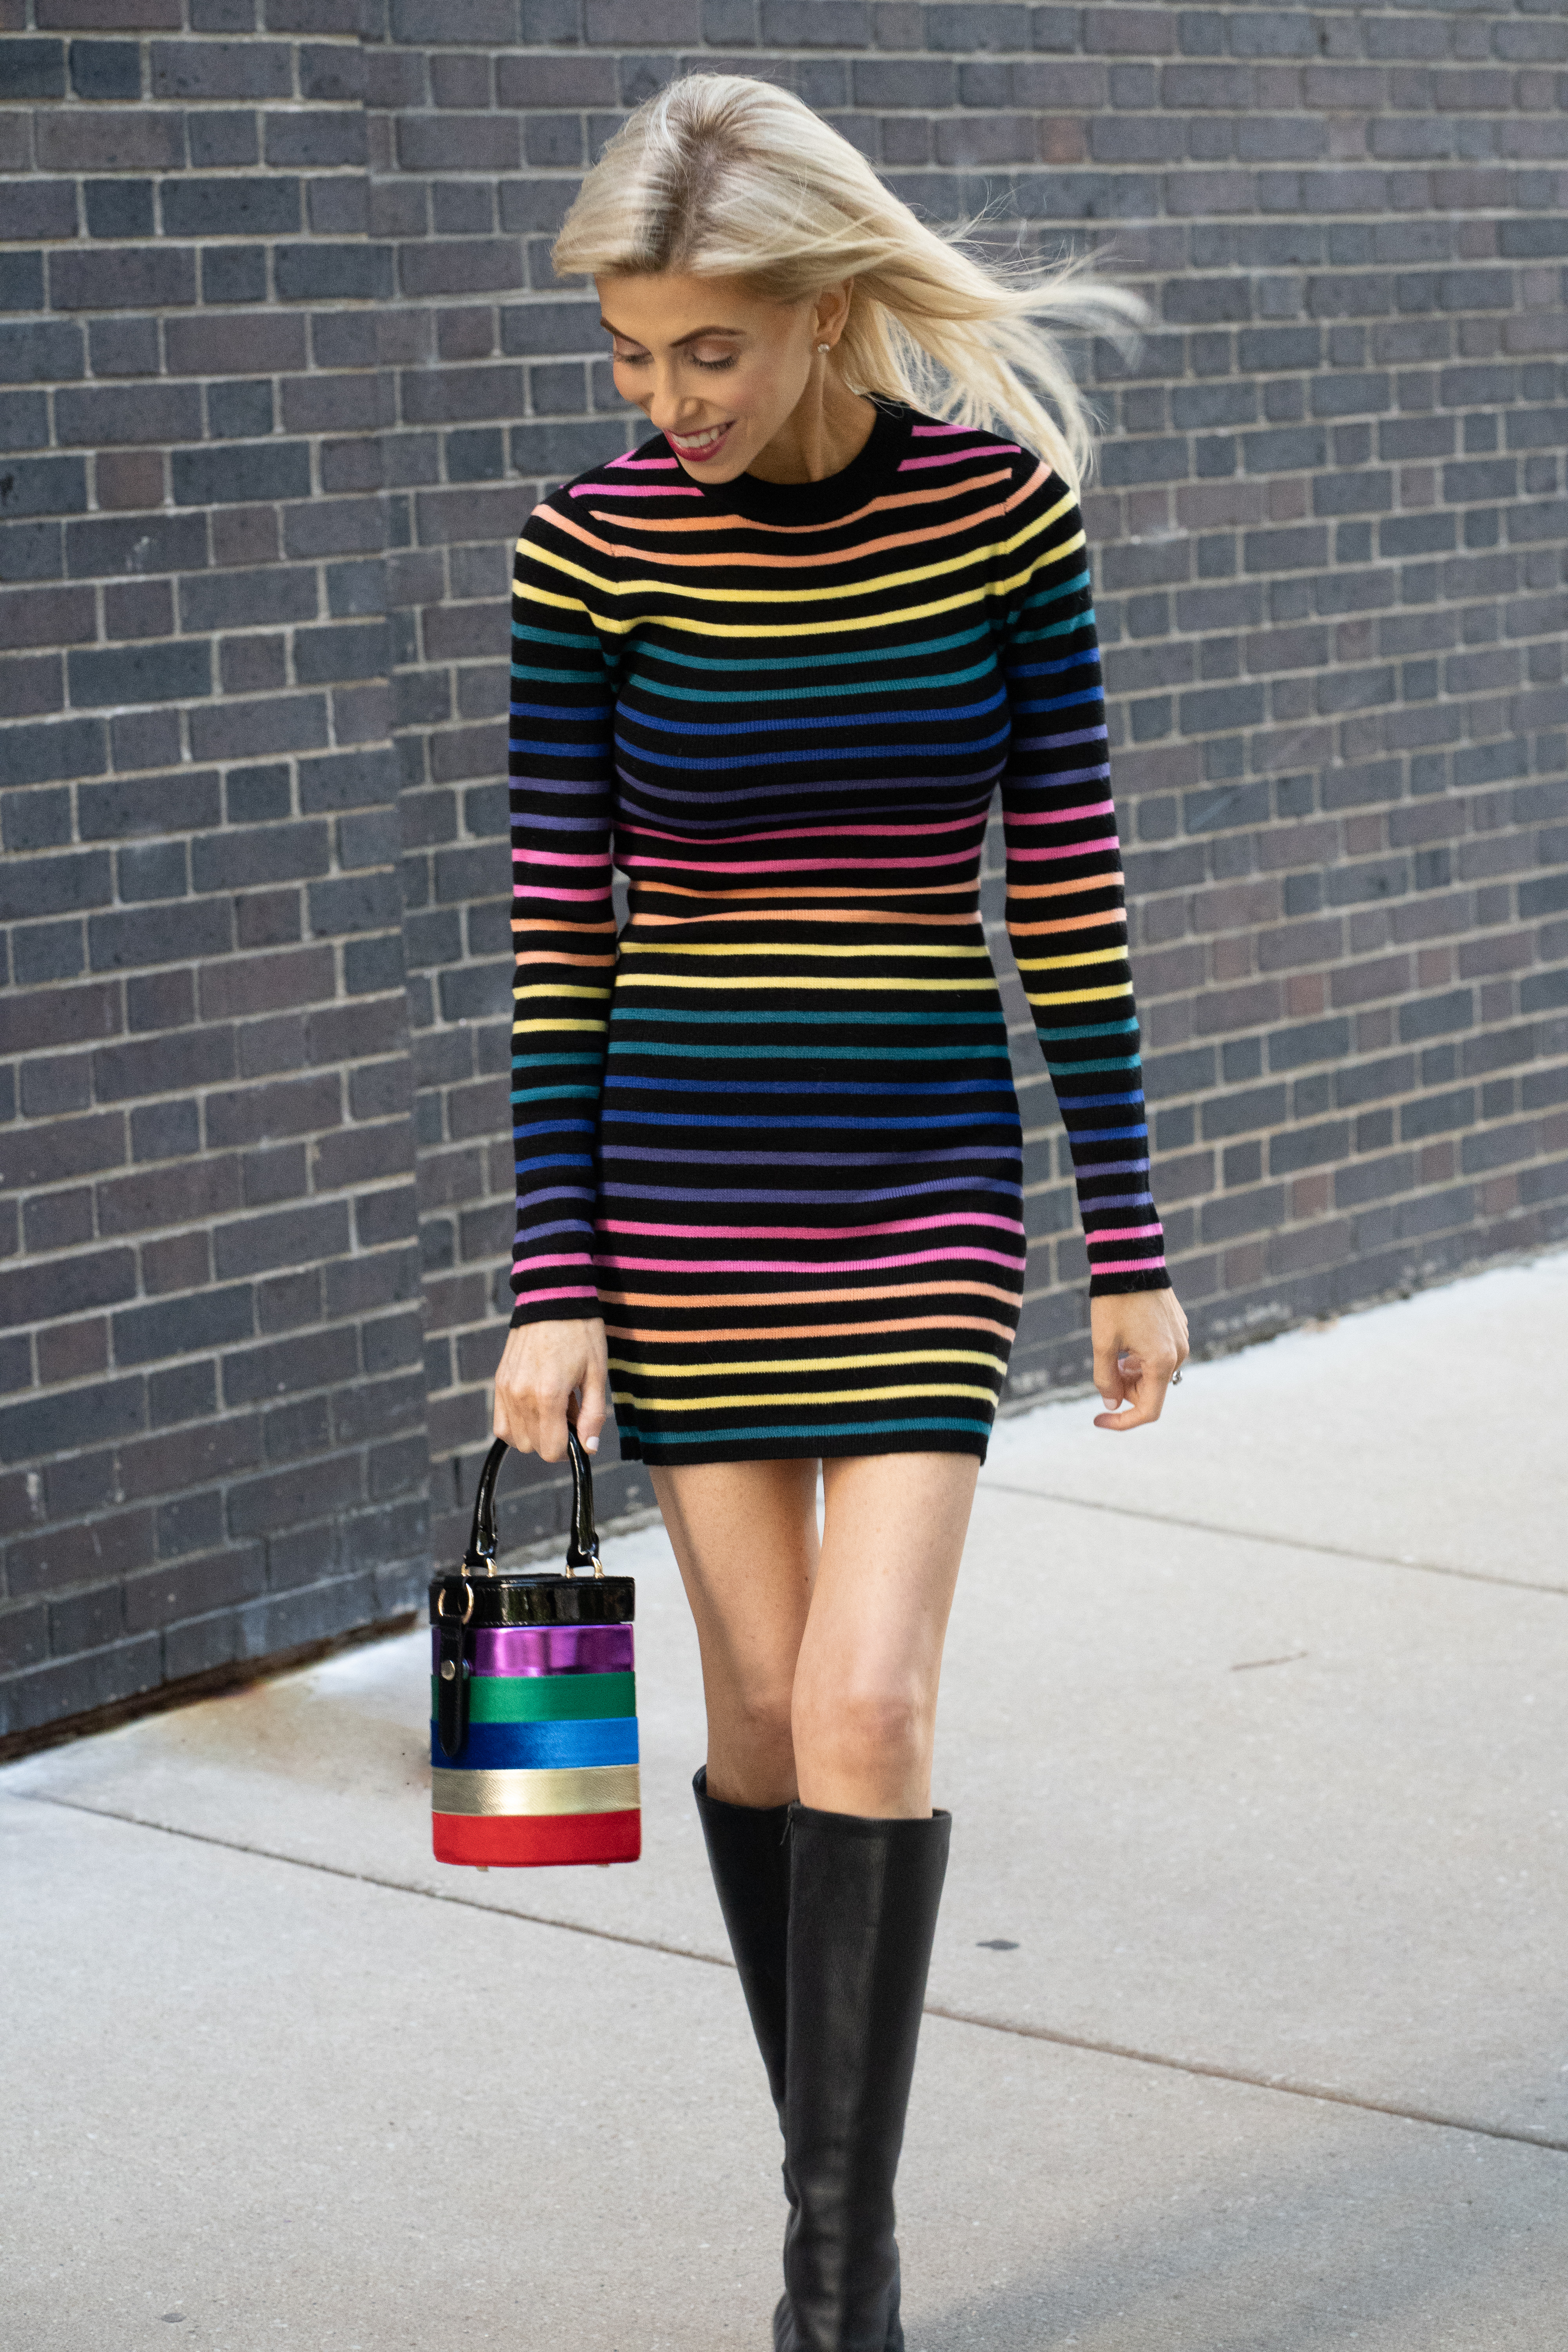 I just love 'wearing the rainbow'! It's just so fun to wear